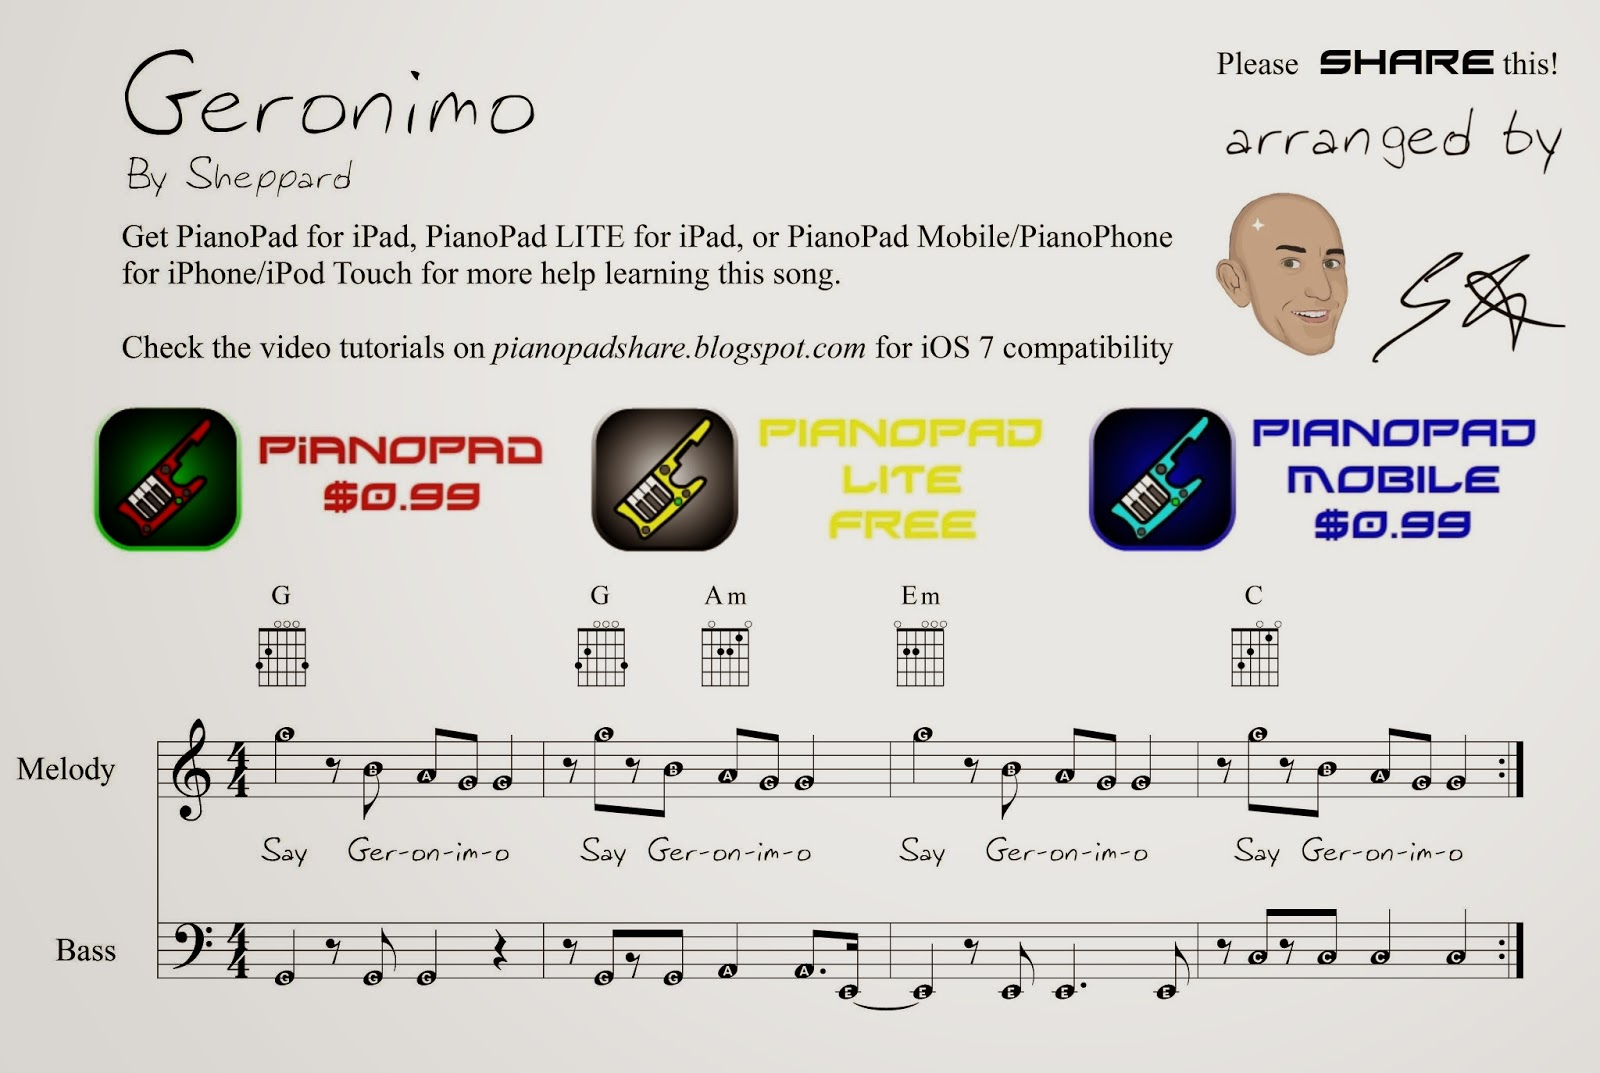 Pianopad Upload Community Geronimo By Sheppard Uploaded By Gh